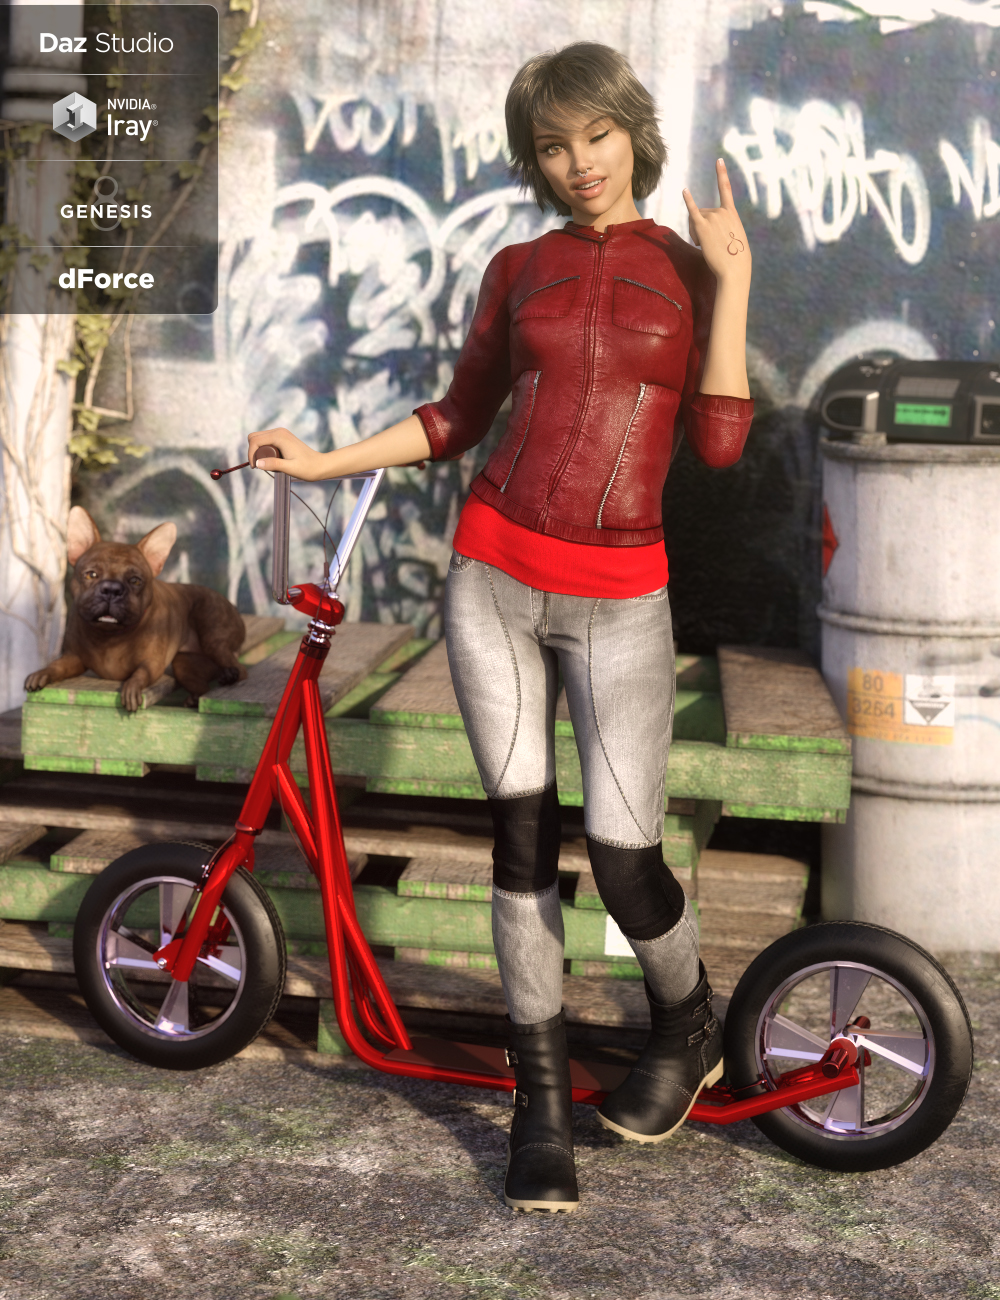 dForce Sleek Rider Outfit for Genesis 8 Female(s) by: DirtyFairyUmblefugly, 3D Models by Daz 3D